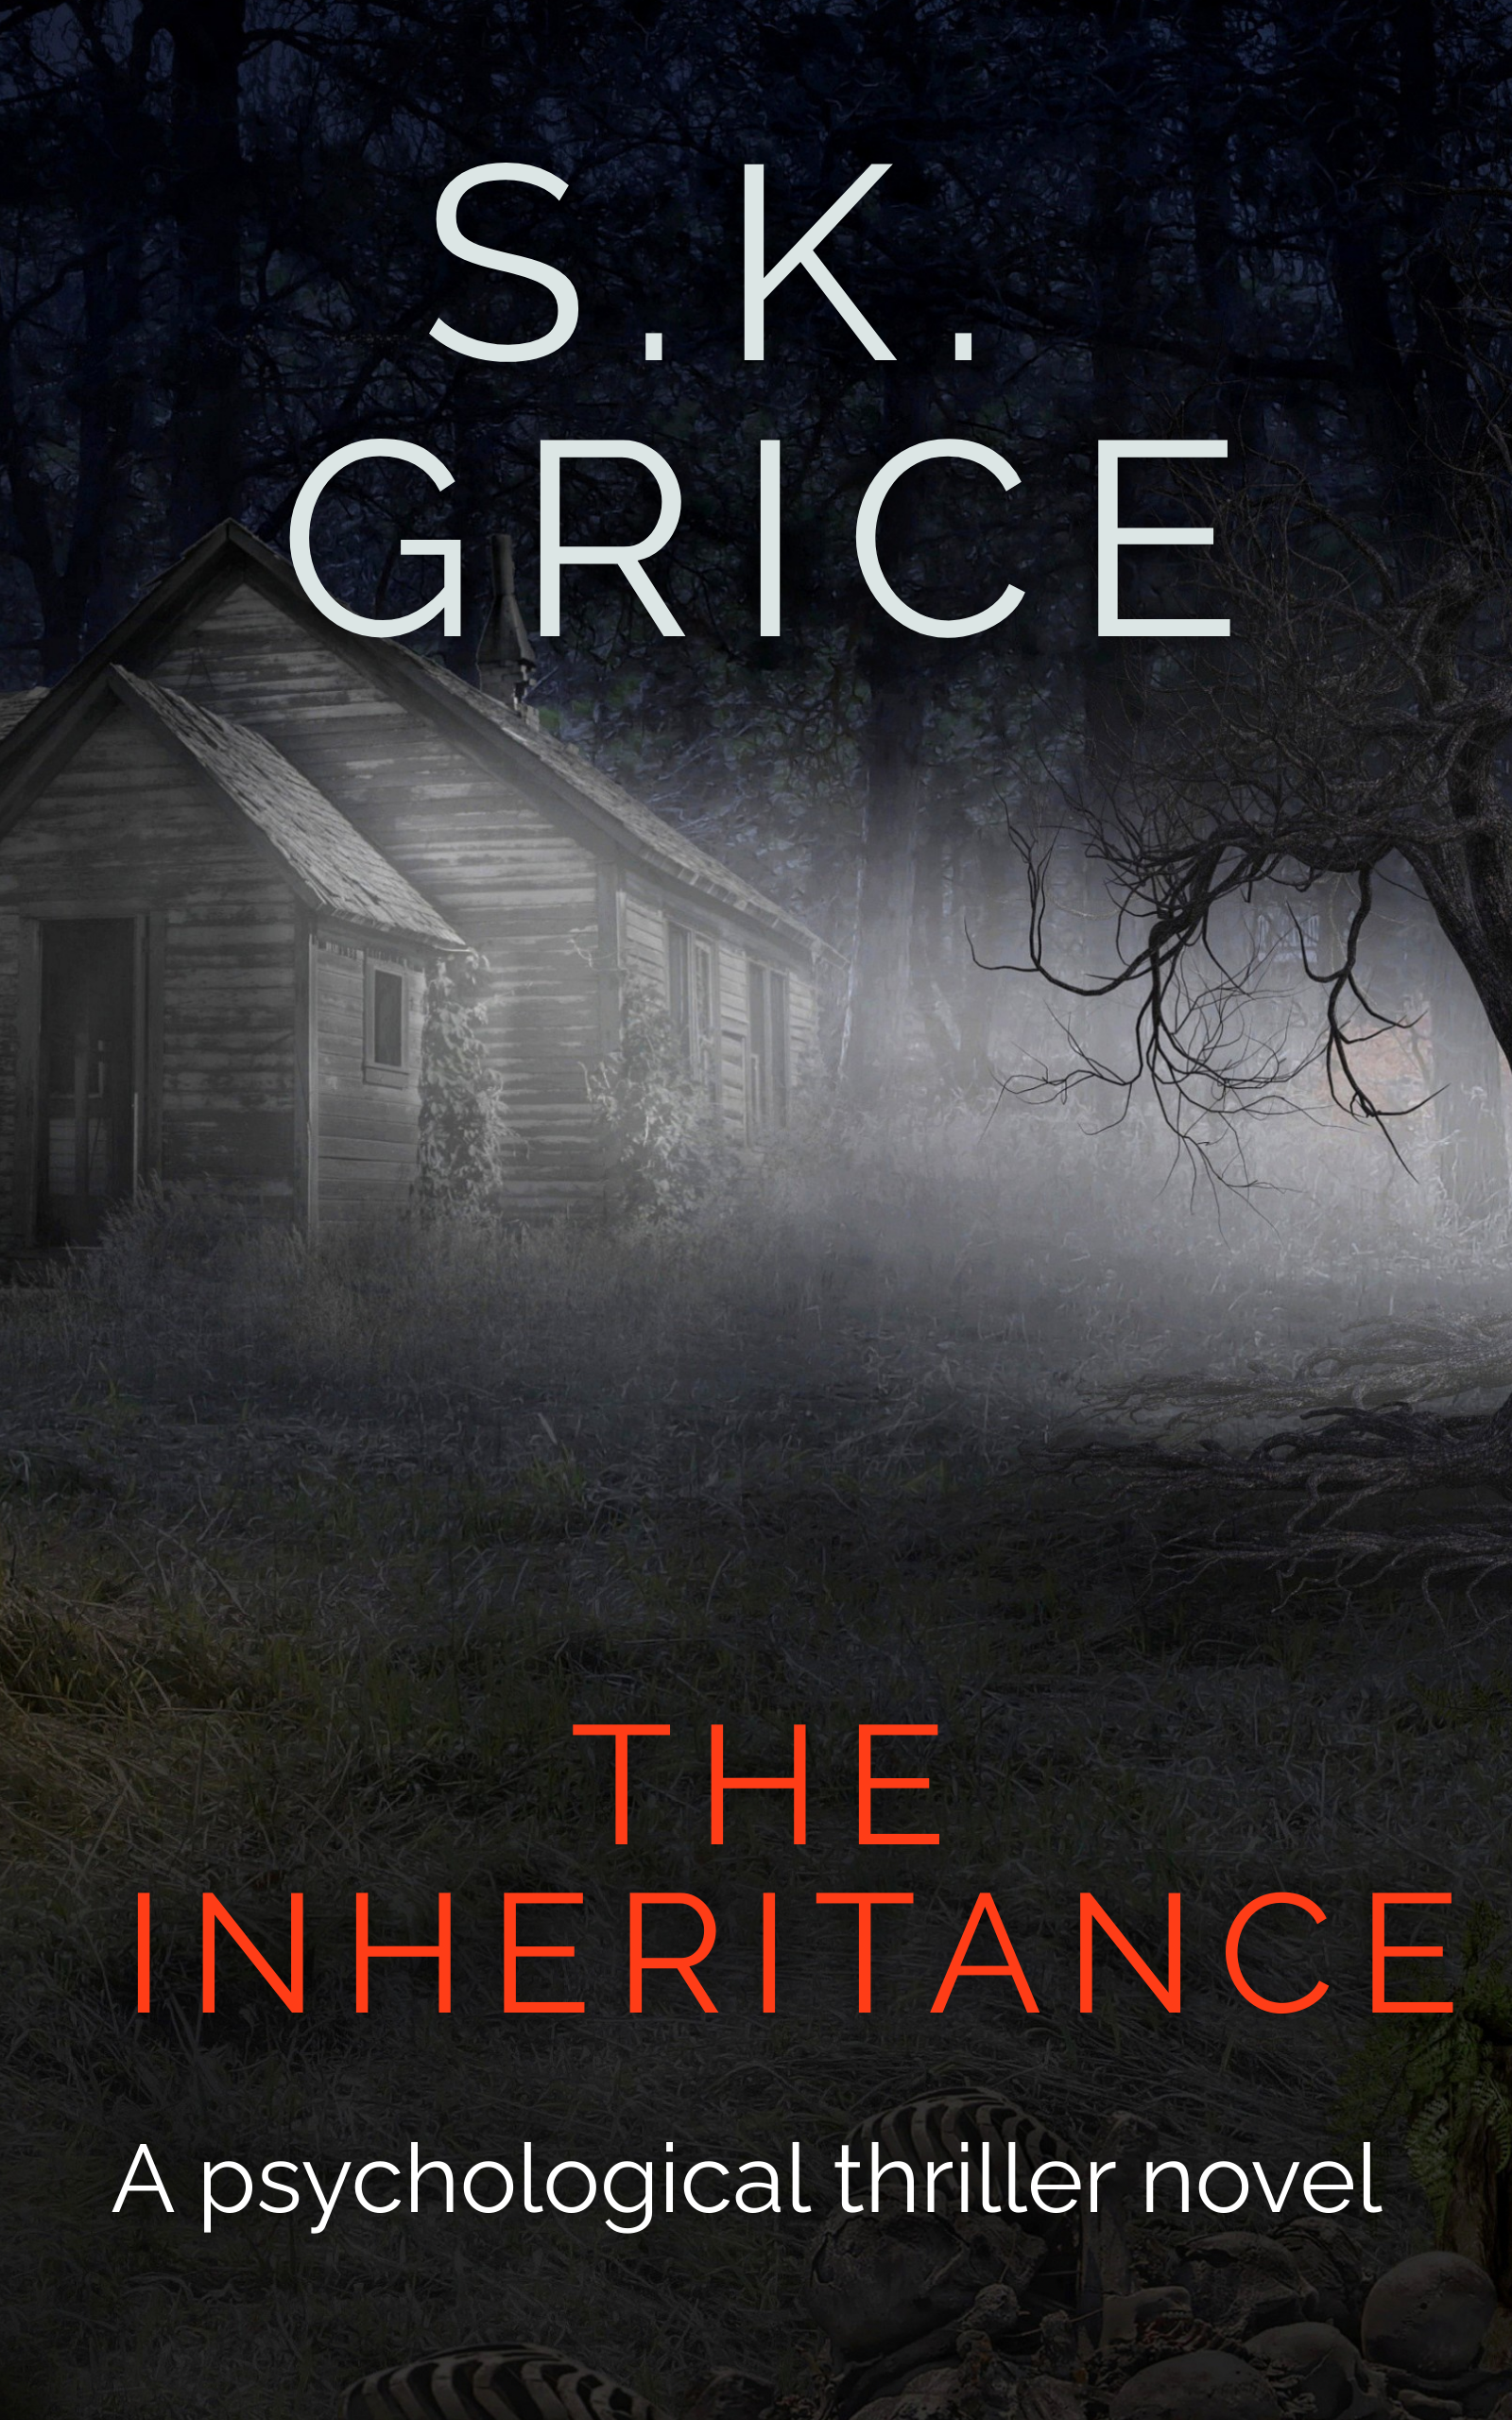 The Inheritance - Book Cover 1